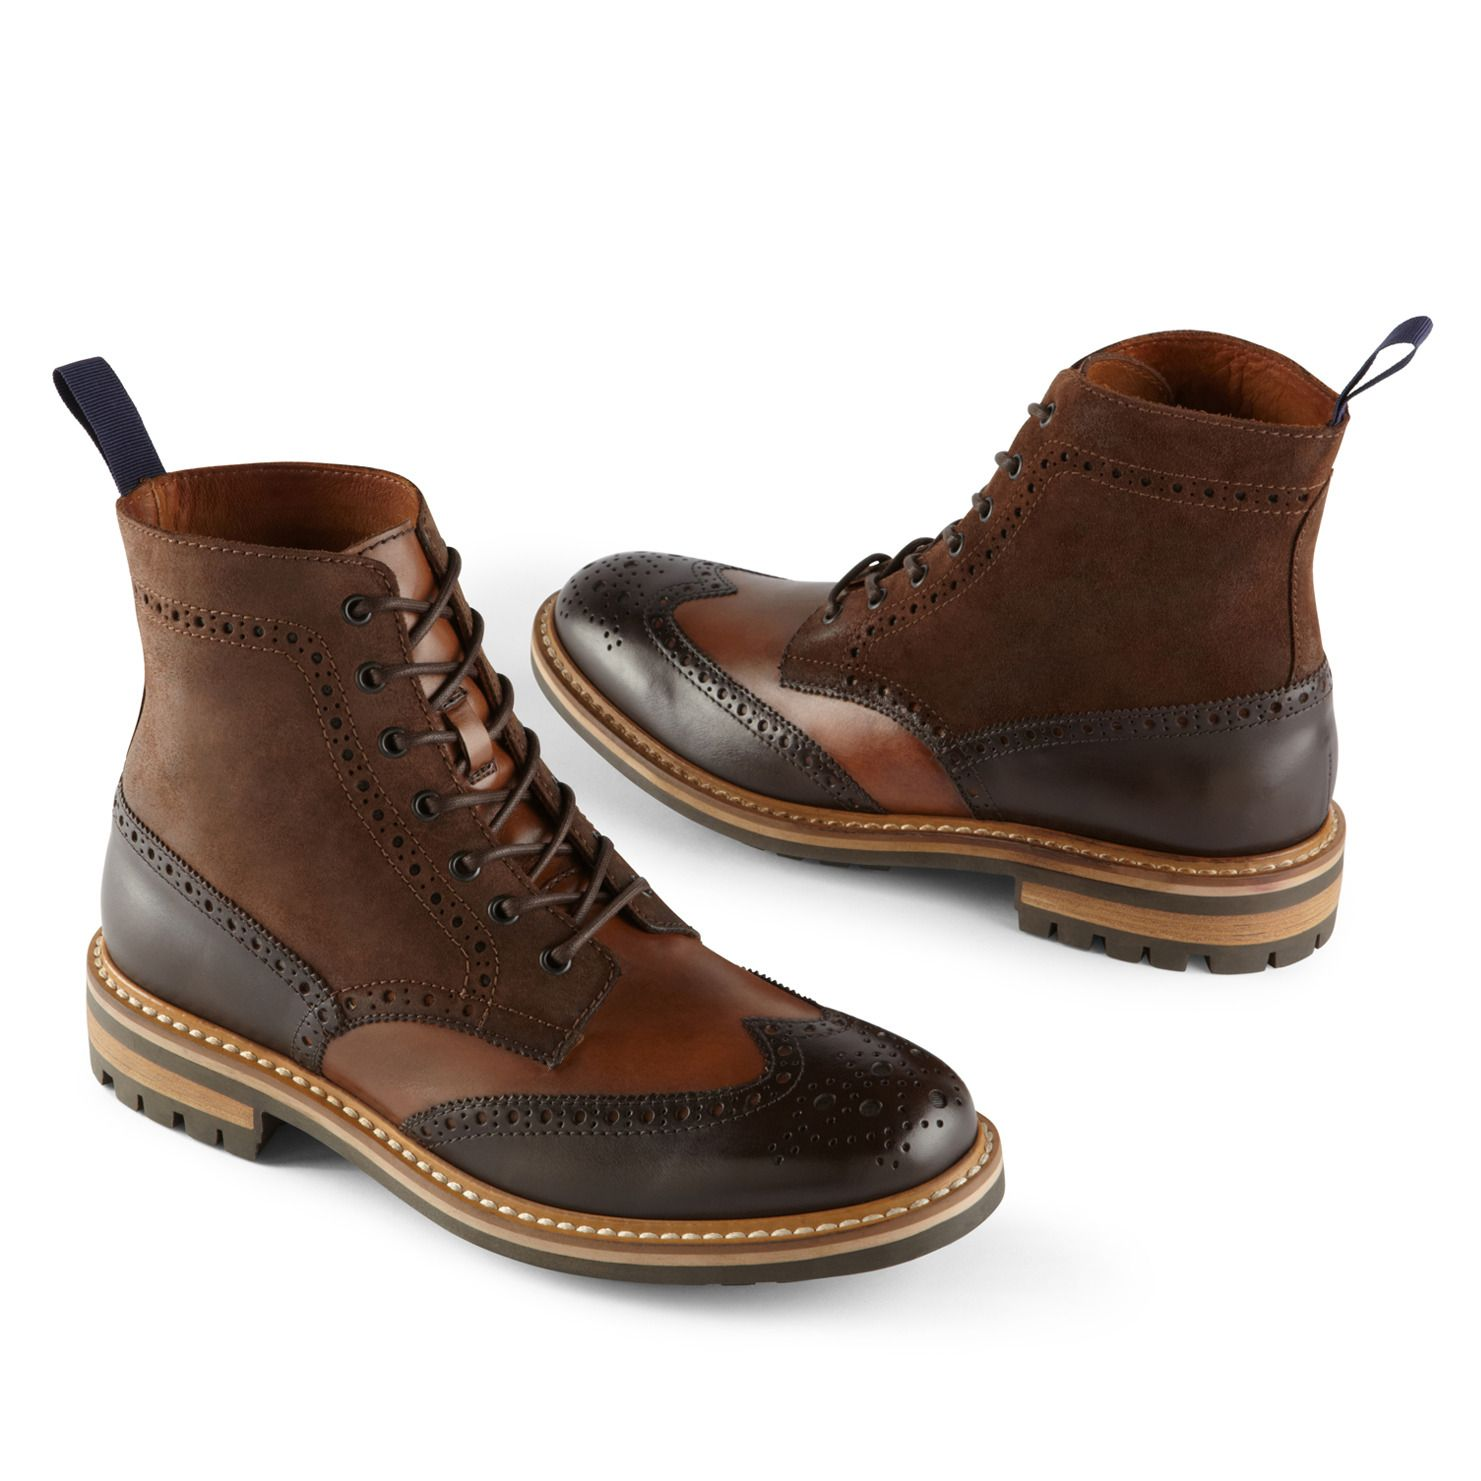 aldo shoes goodyear welted boots the chemist uk